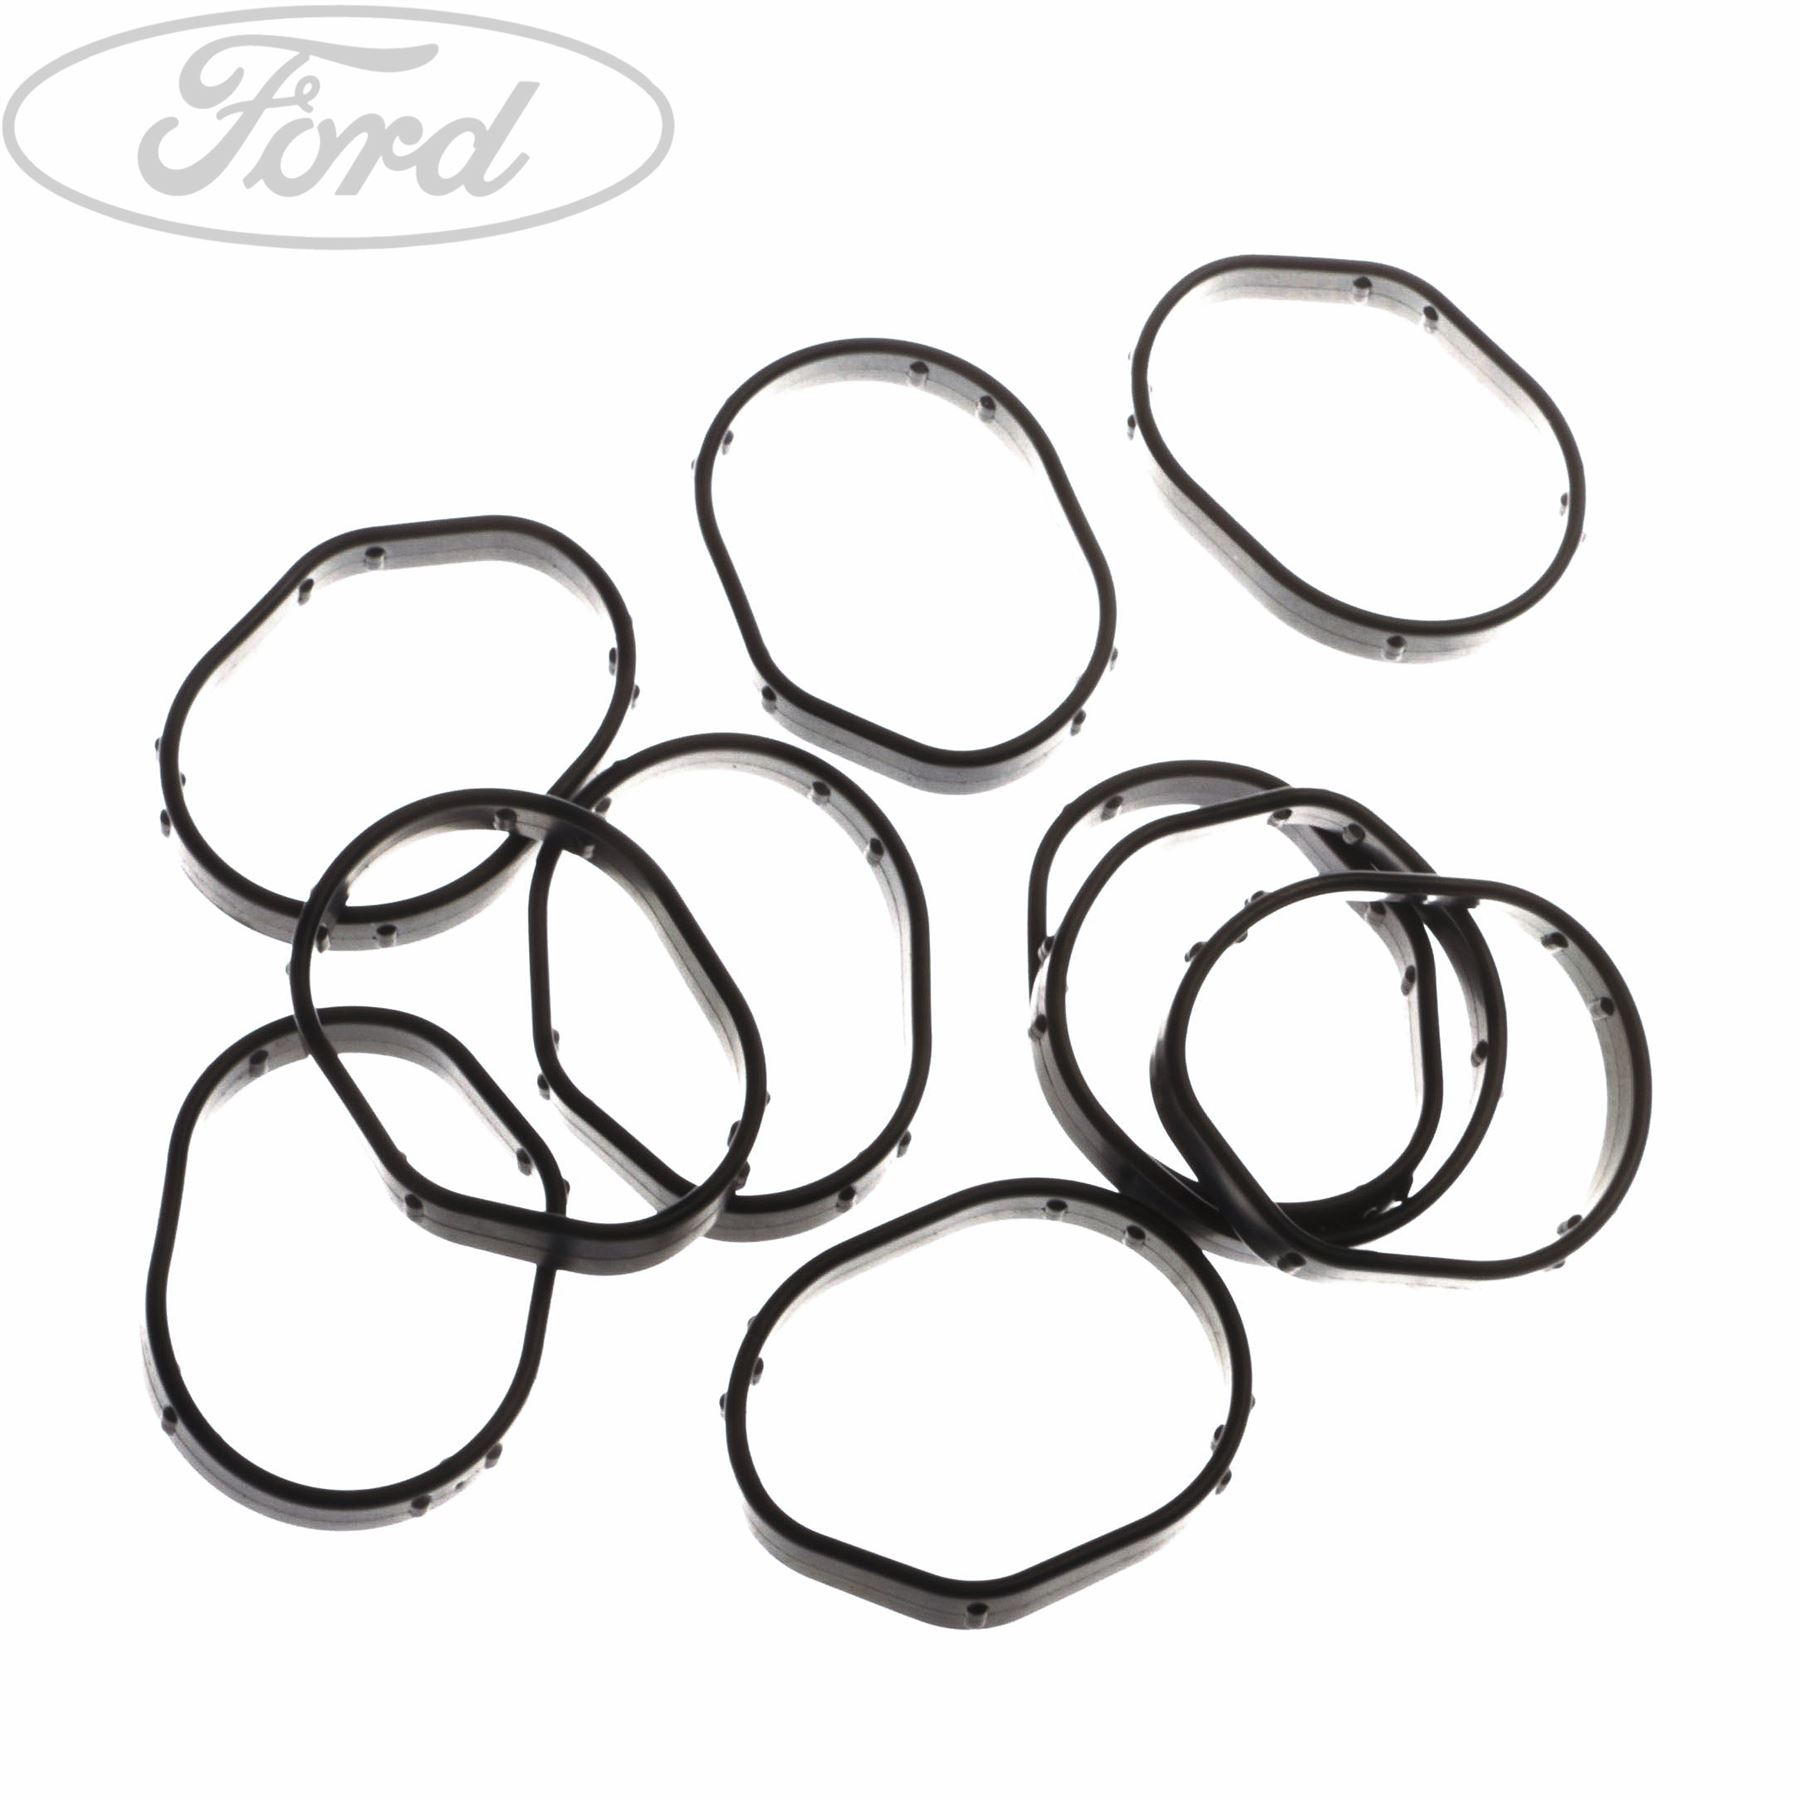 Genuine ford timing gear cover gasket x10 1816352